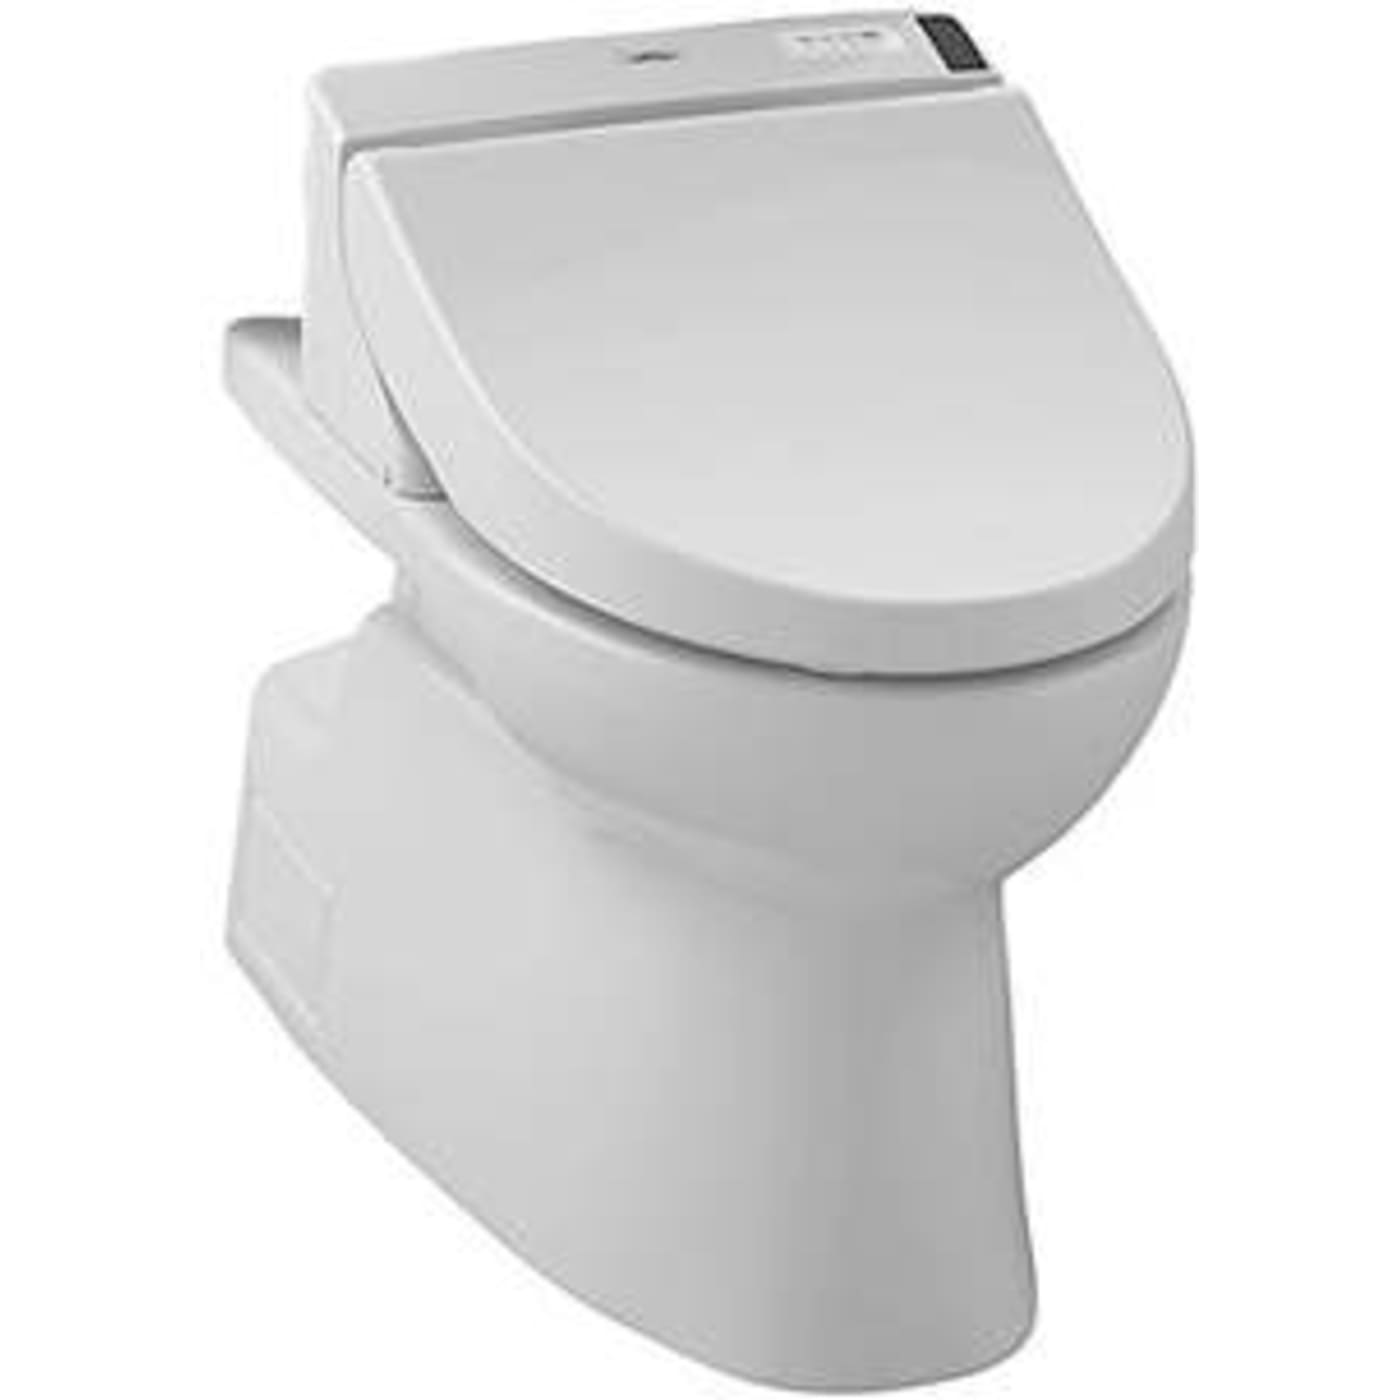 Toto Vespin II Elongated Toilet Bowl CT474CUFGT20#01 Cotton White ...